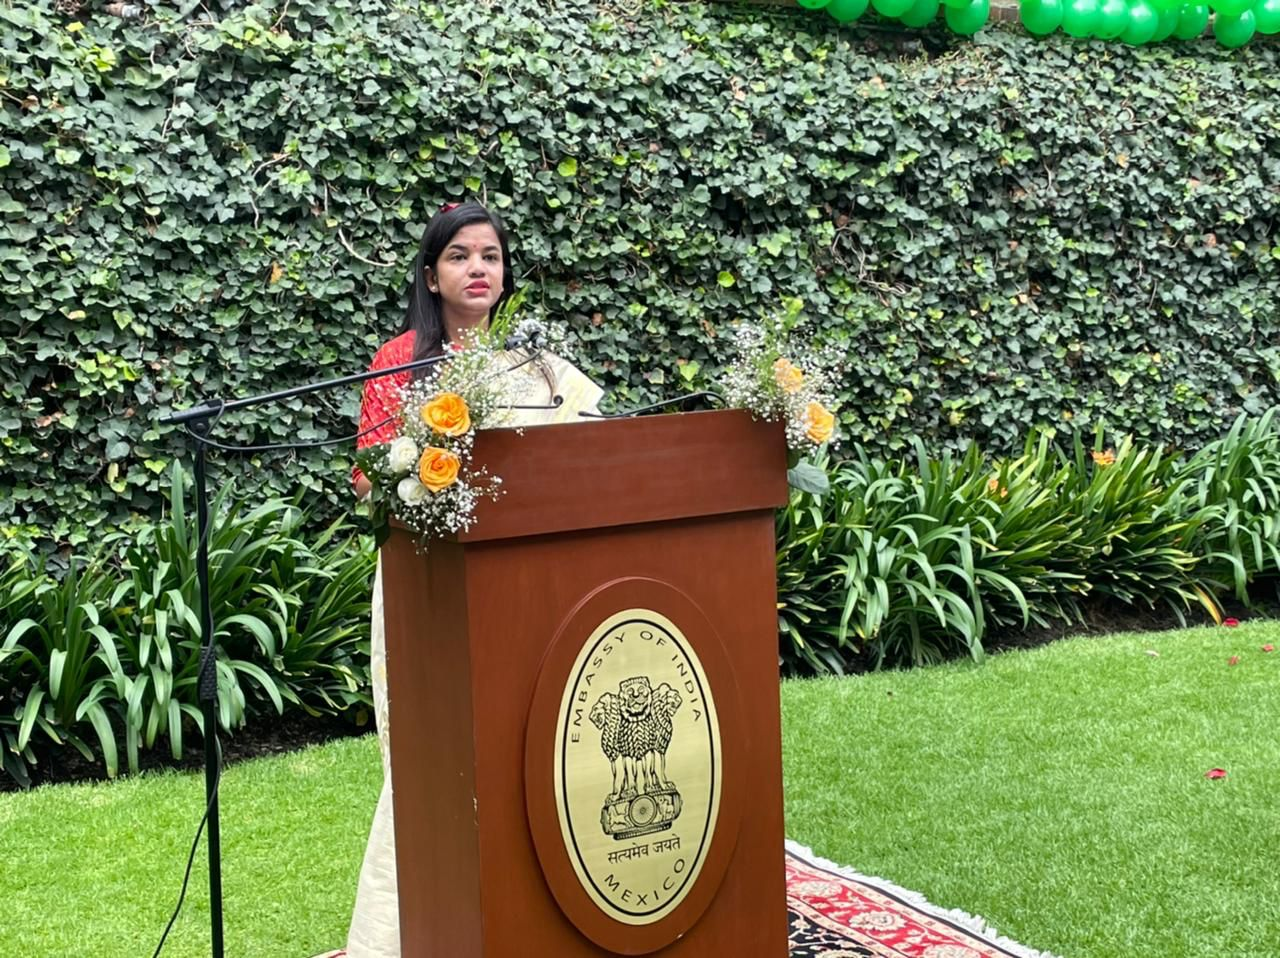 Embassy of India celebrated the 75th Independence Day on 15 August. Cd'A Ms. Juhi Rai unfurled the flag and read the President's address to the nation.